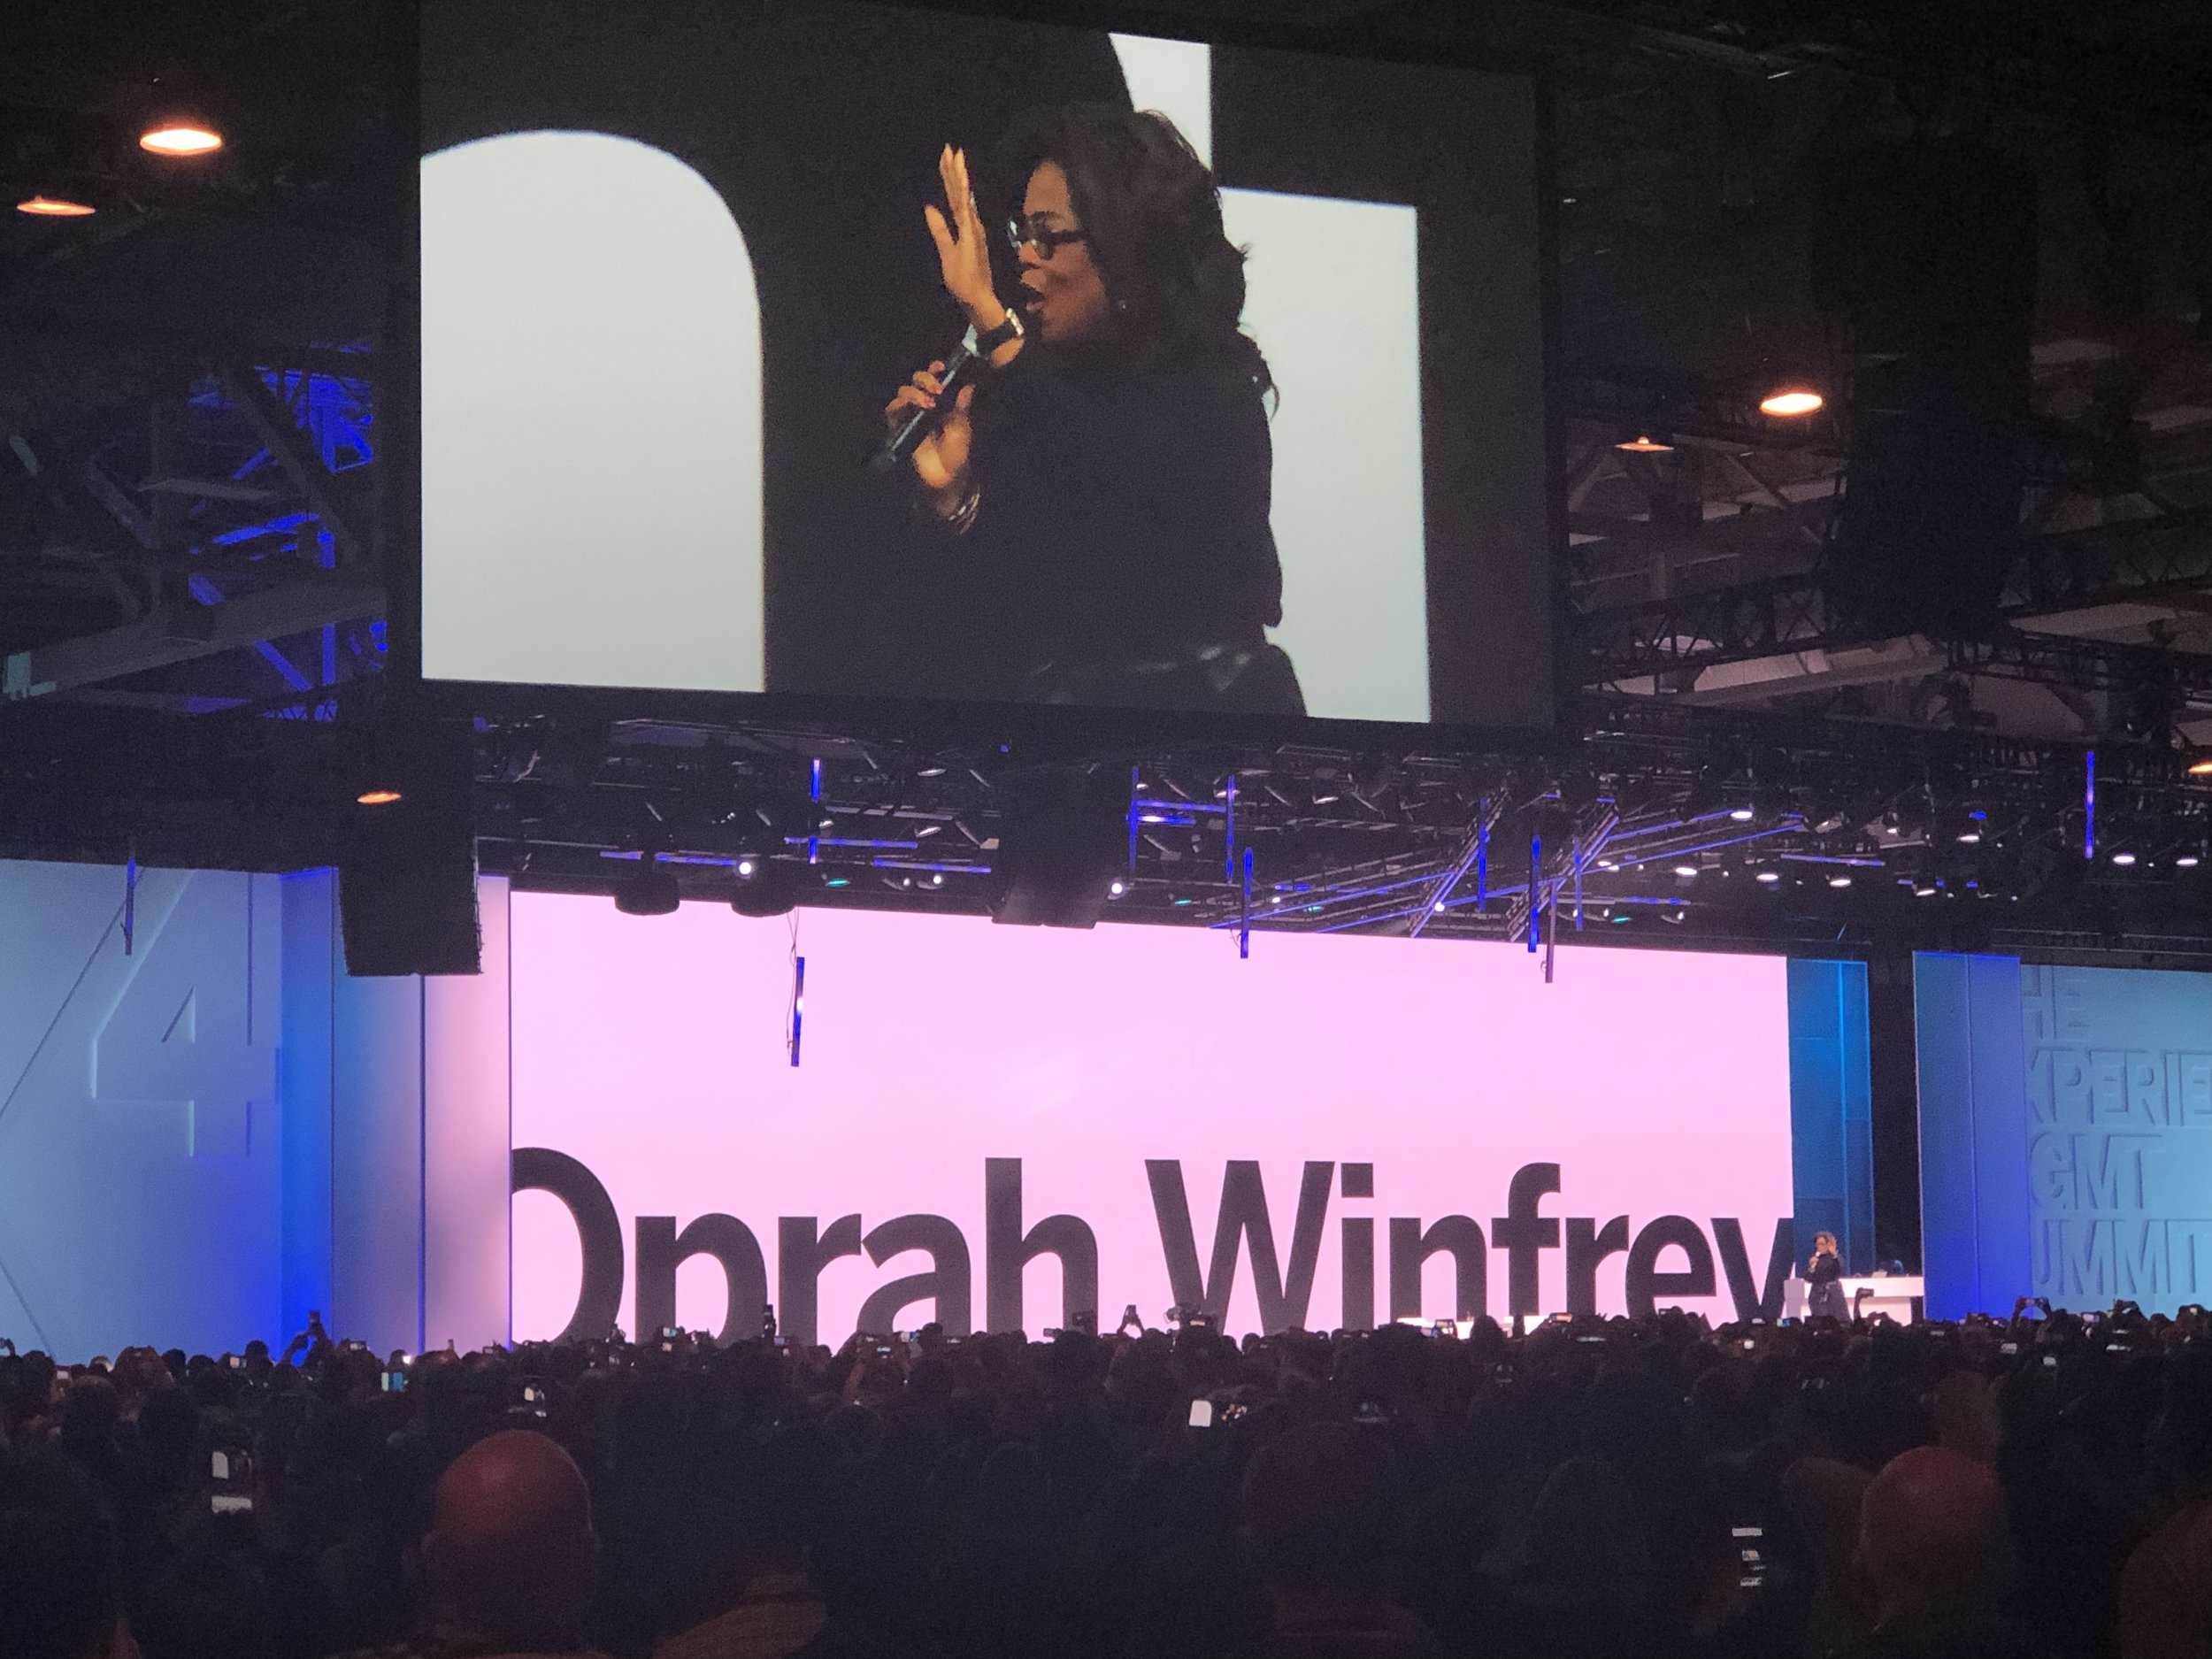 Oprah Winfrey speaking at the conference.